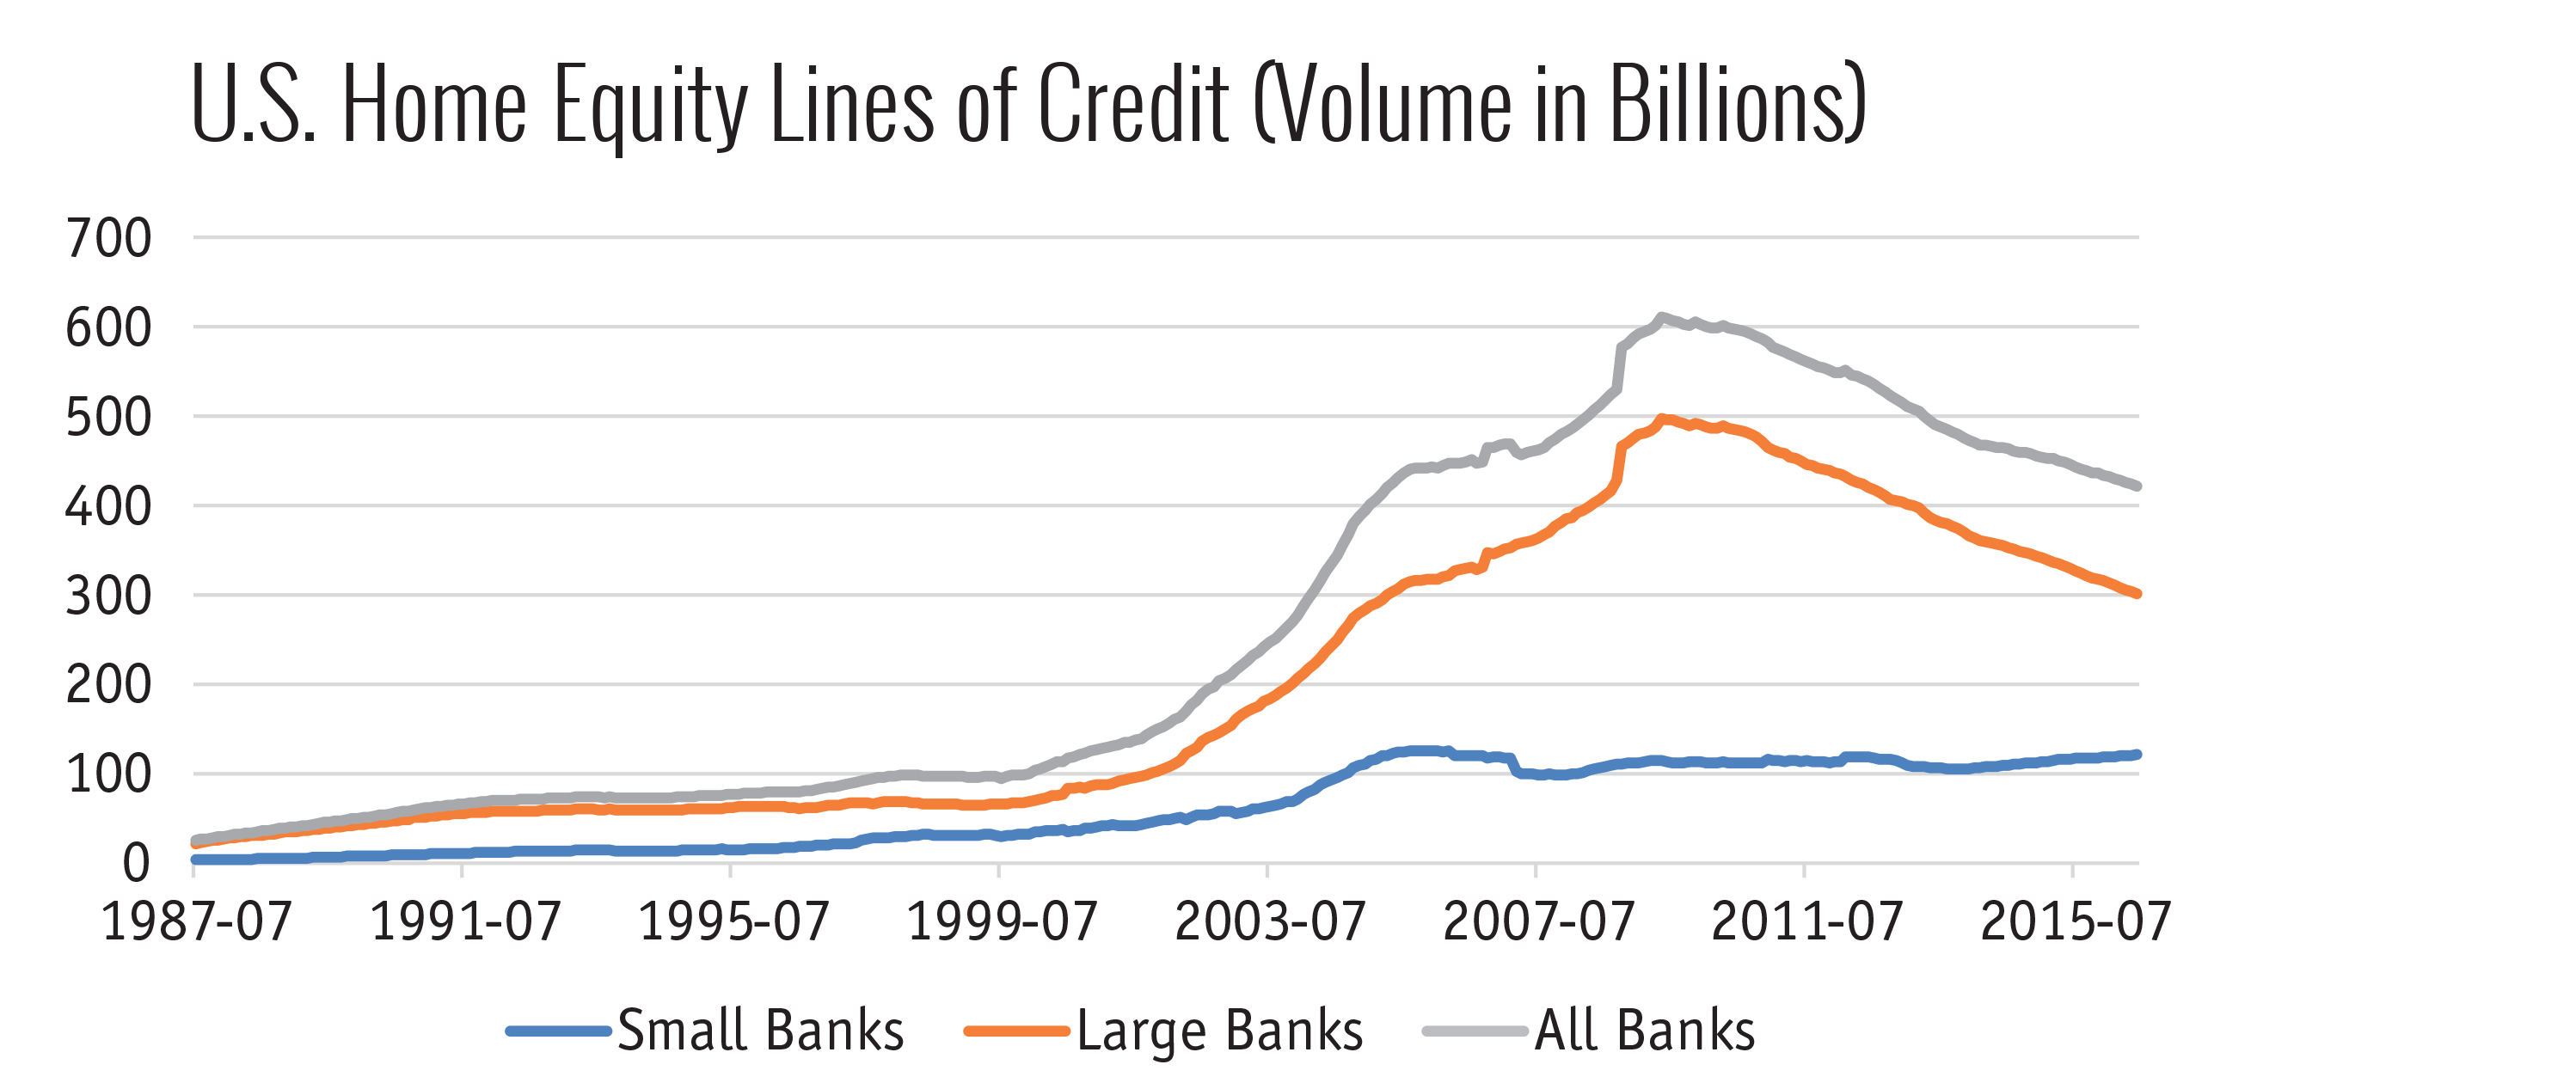 U.S. Home Equity Lines of Credit (Volume, in Billions)